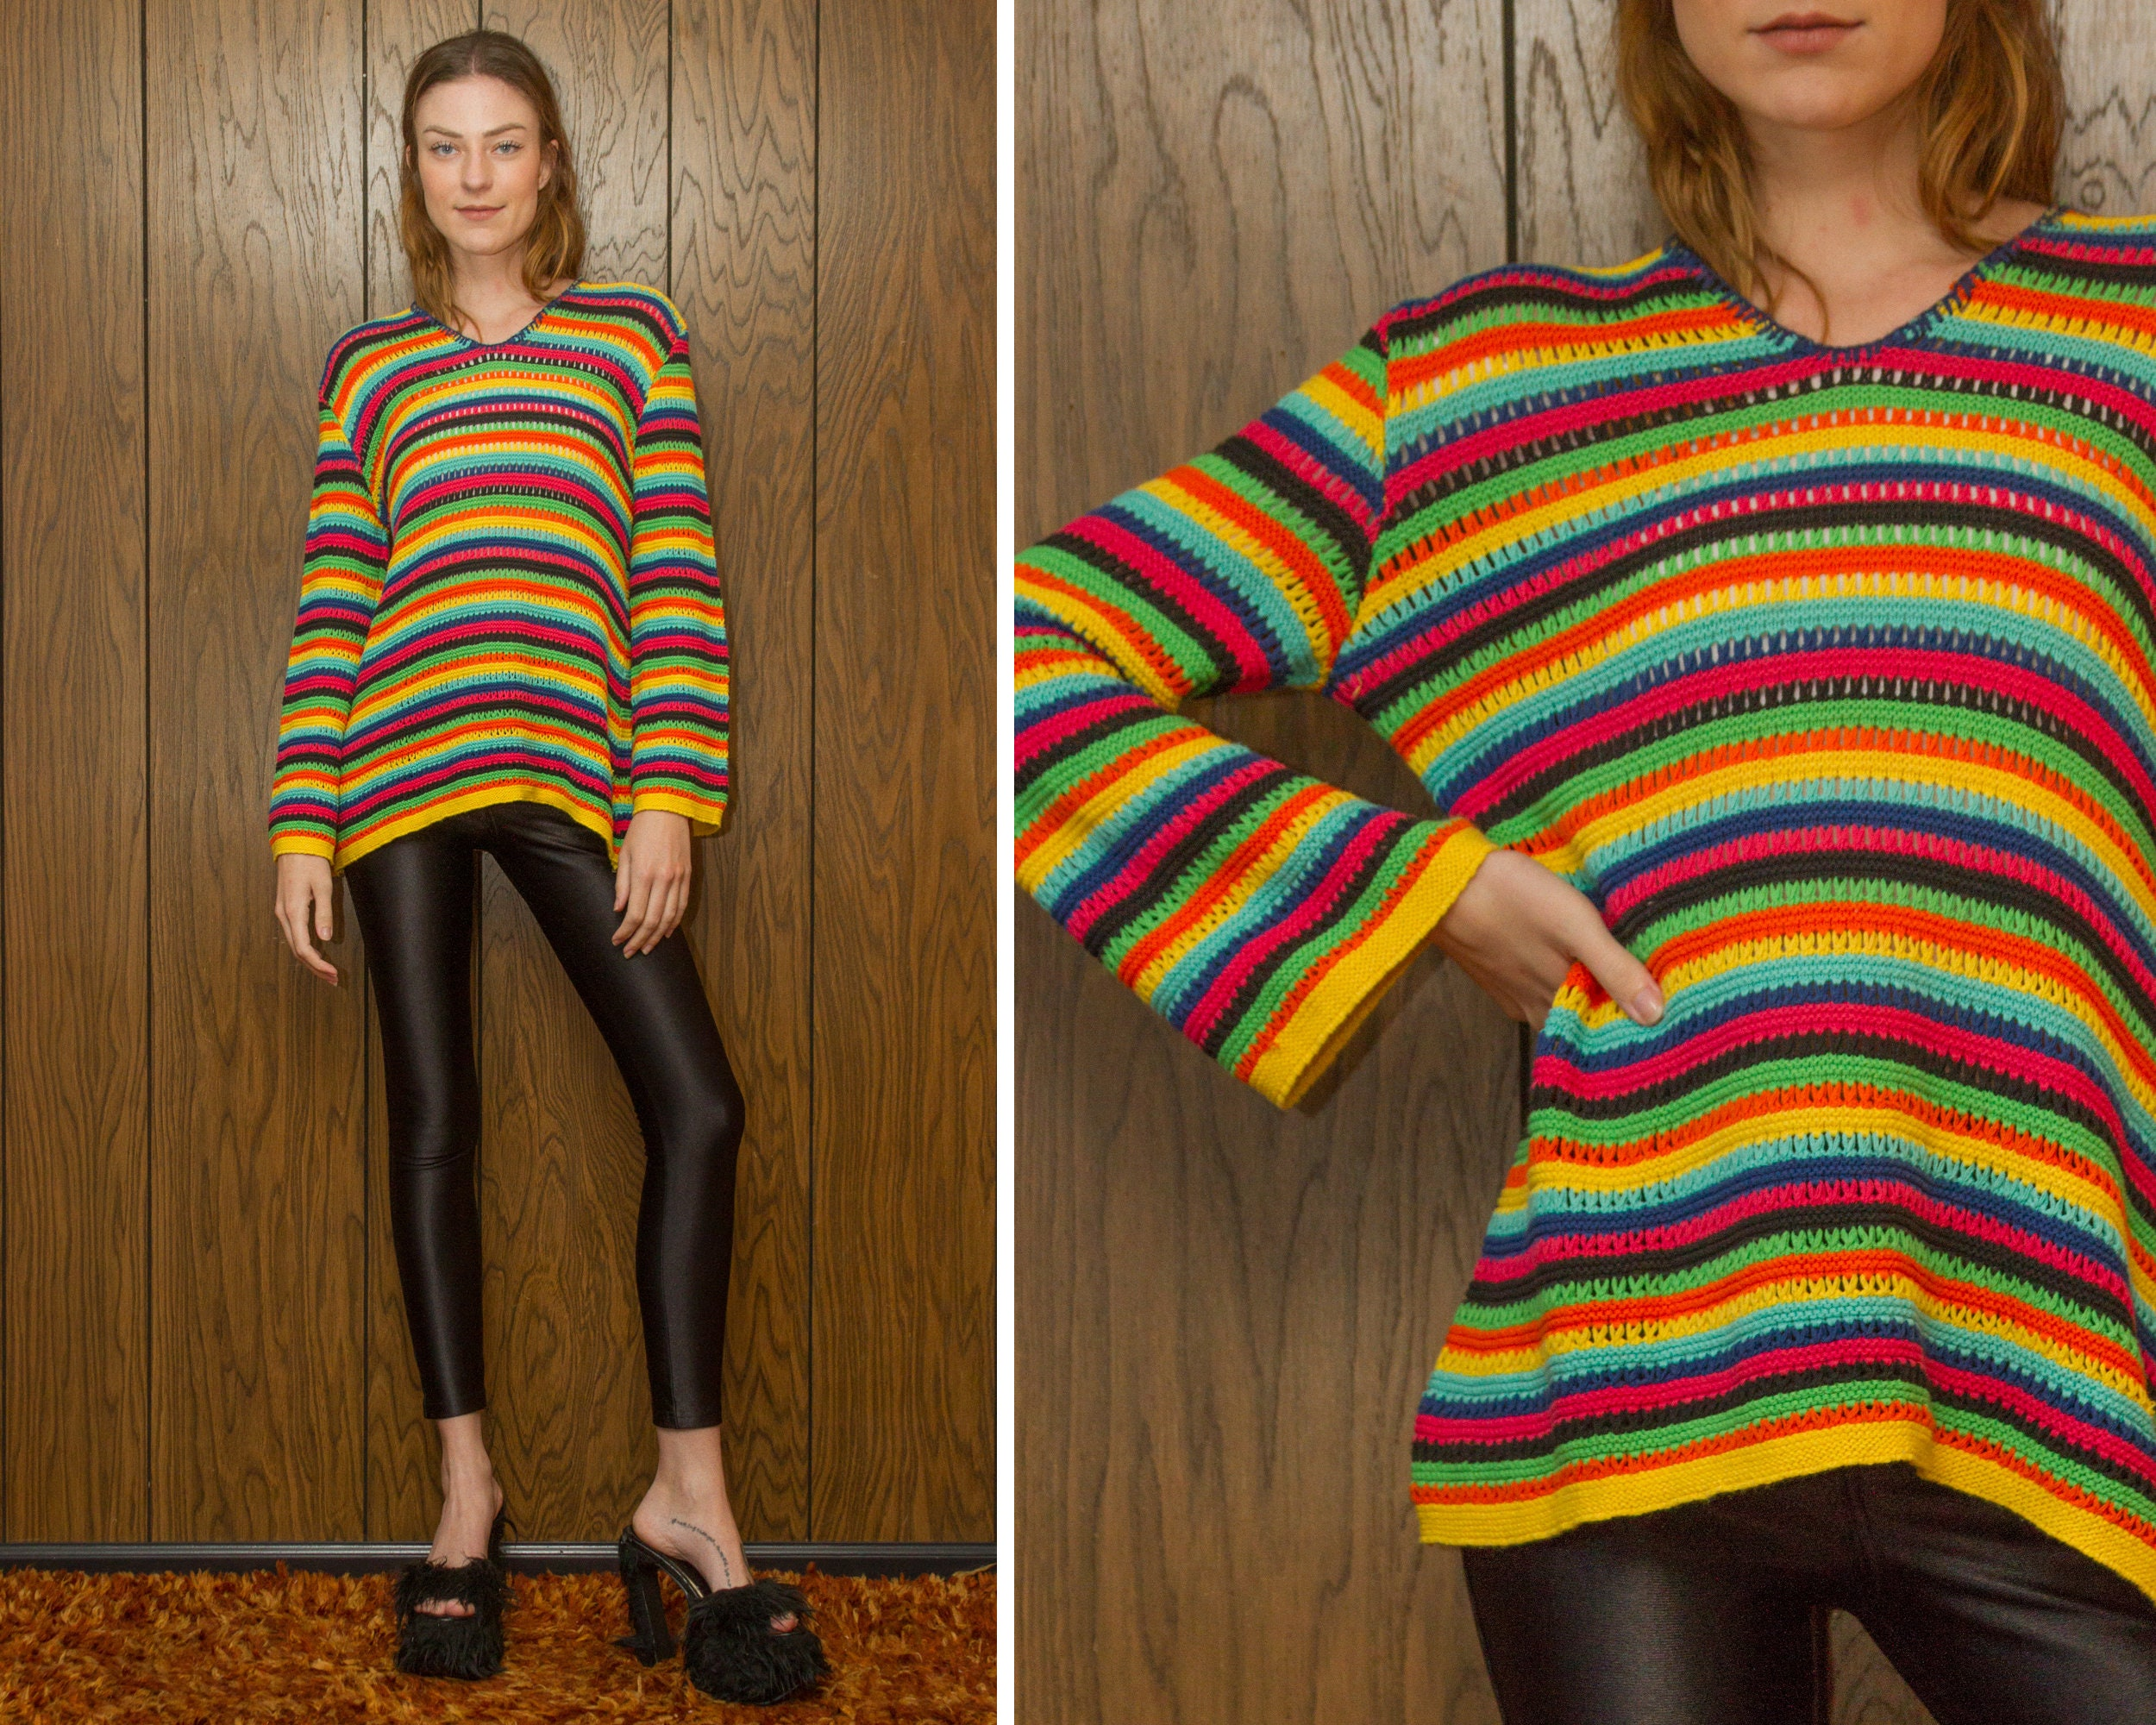 774b183c5 Vintage 90s Fiesta Neon Striped Cotton Loose Knit Textured Graphic ...